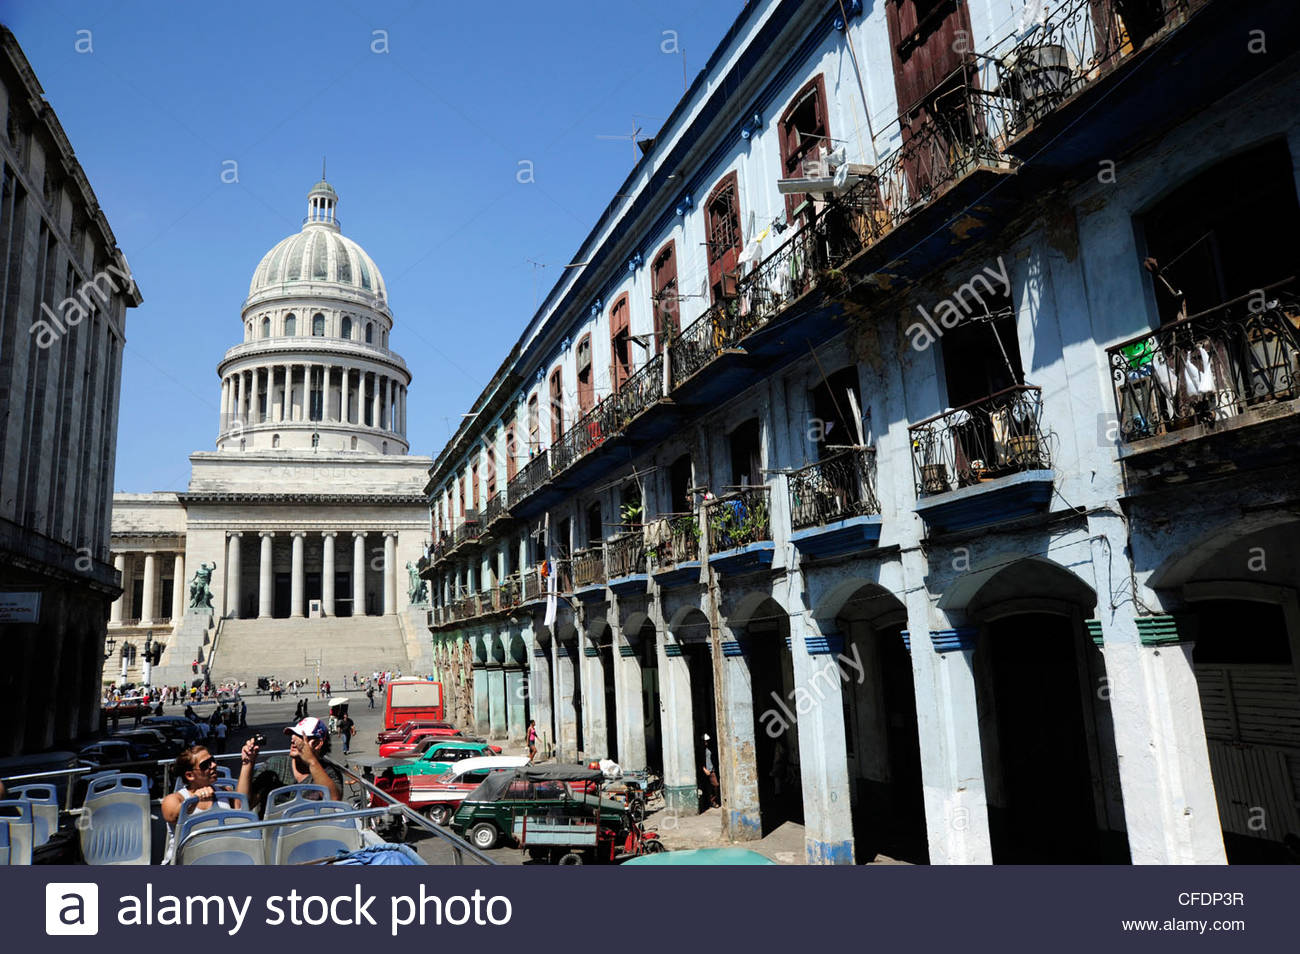 The Capitolio Nacional in the neoclassicism style, city center of Havana, Centro Habana, Cuba, Greater Antilles, - Stock Image